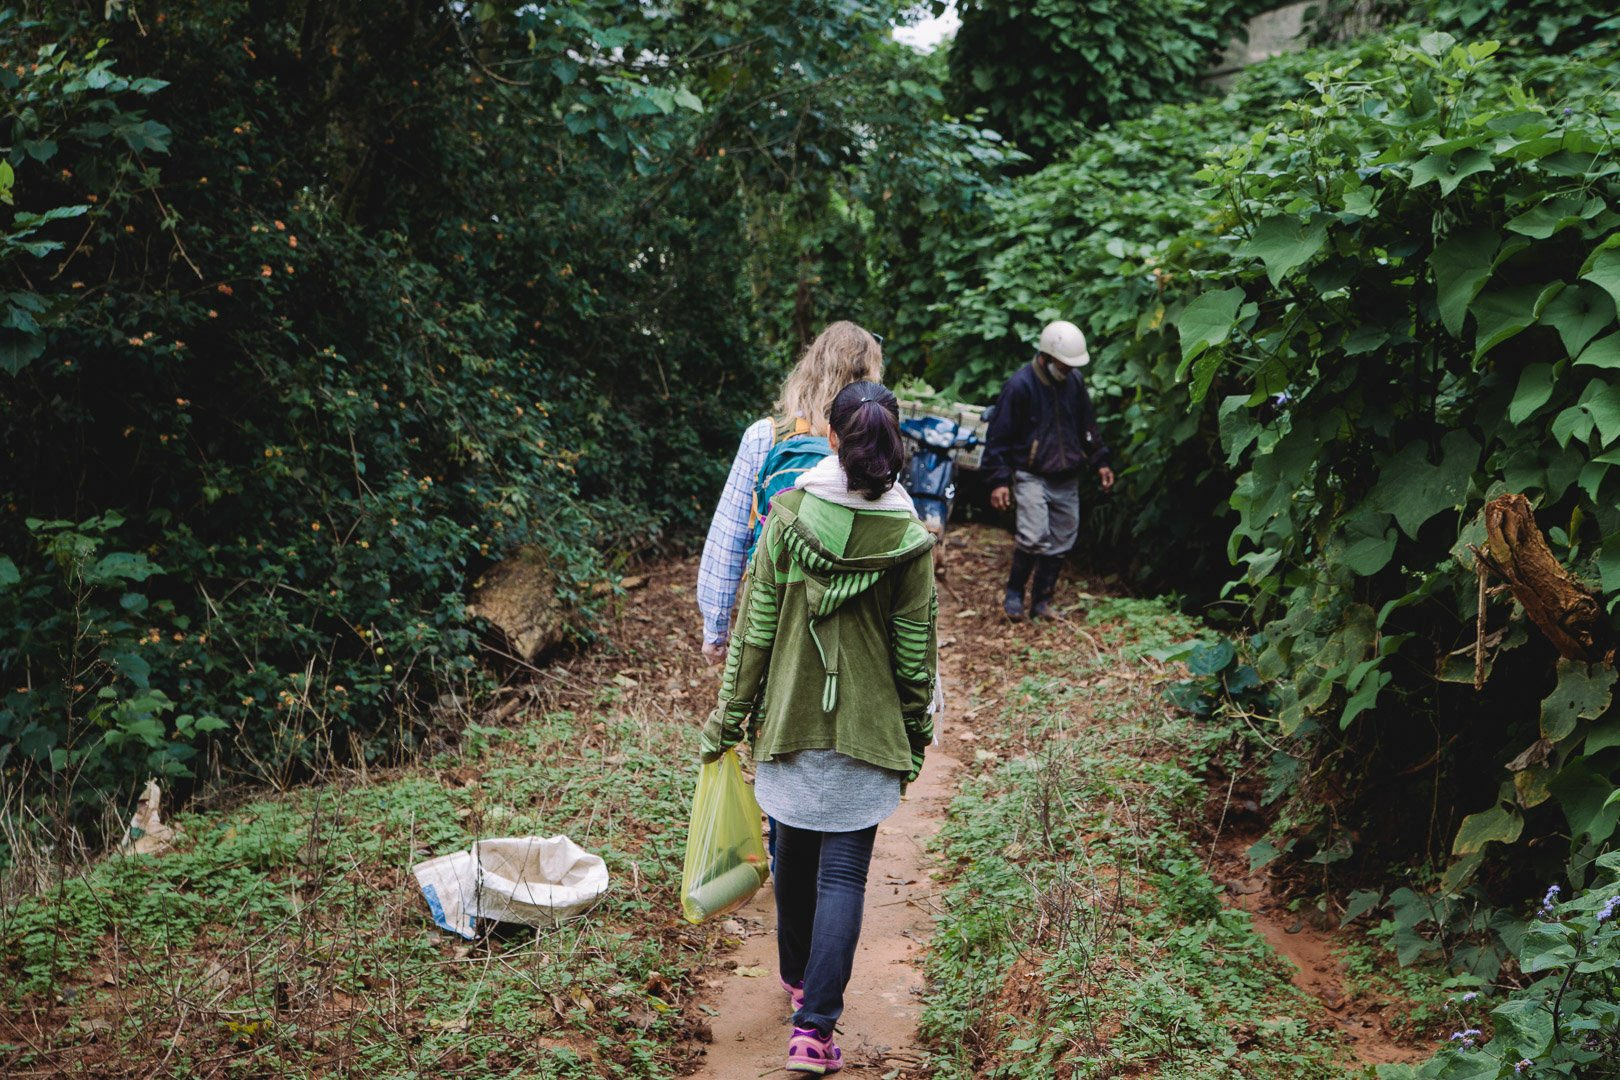 Walking the muddy paths of the Dalat coffee farm